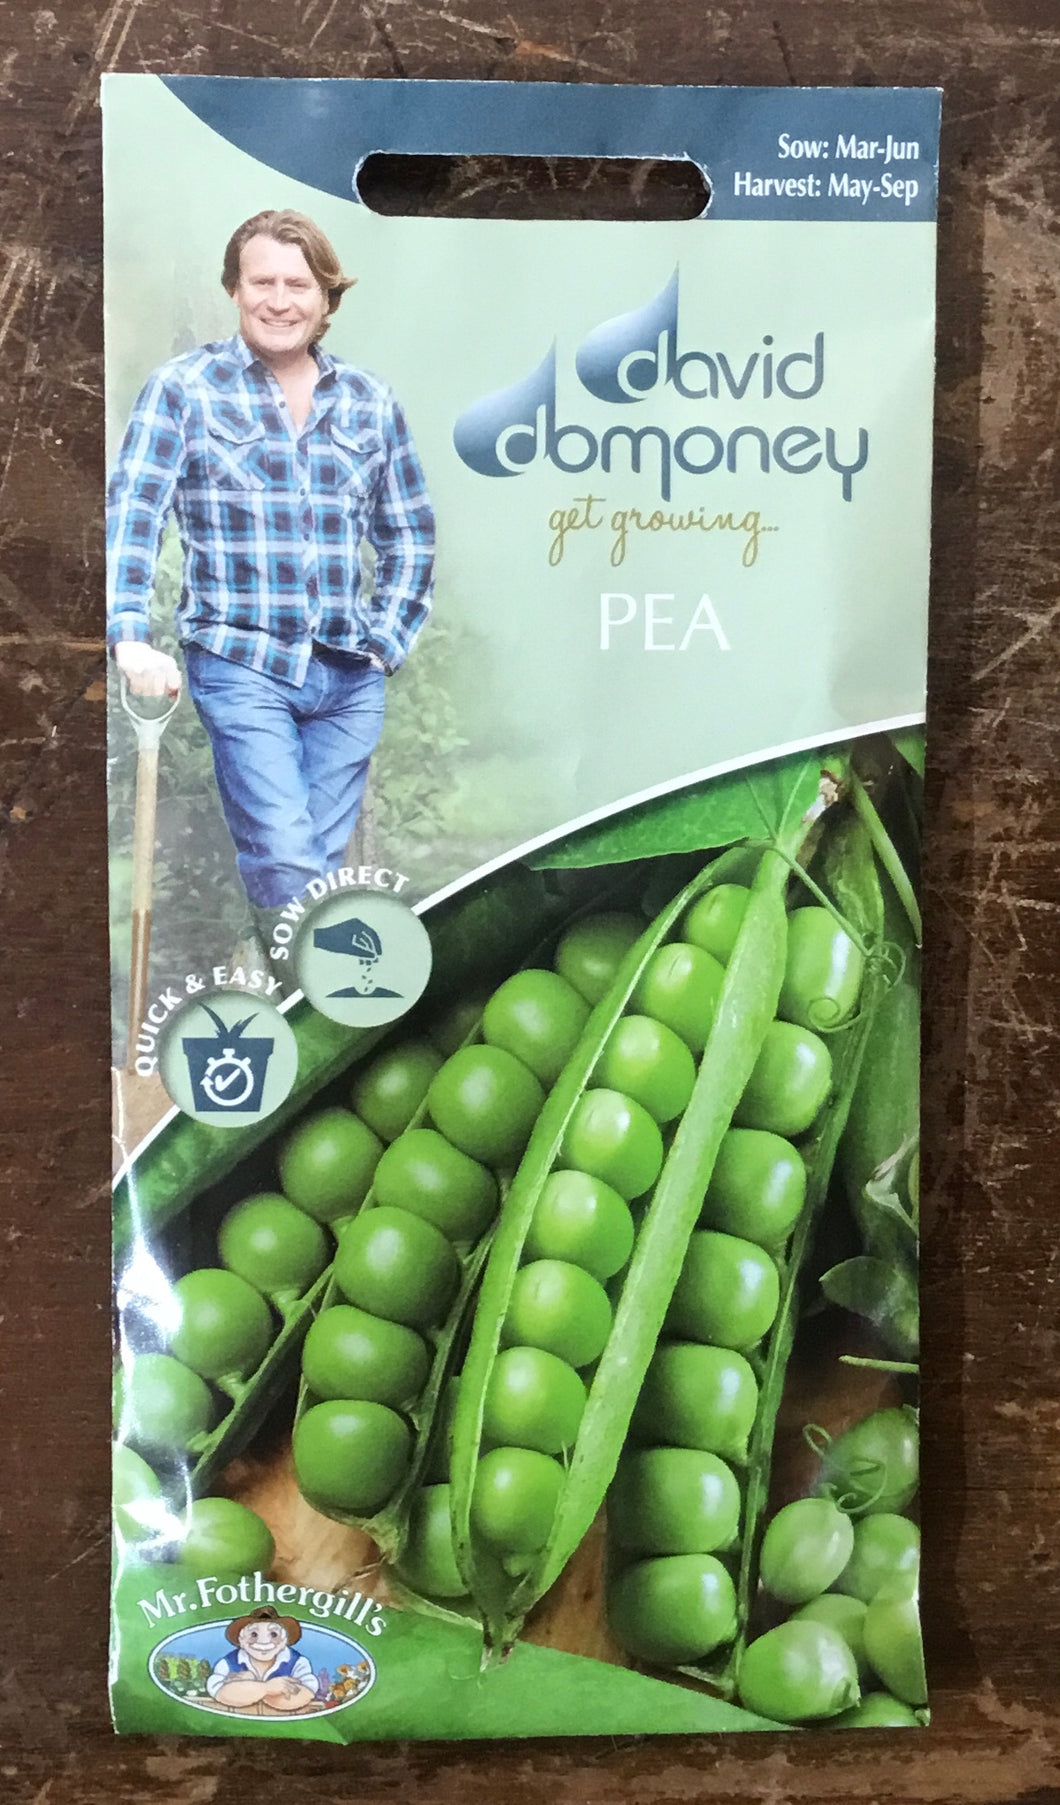 Pea Ambassador - David Domoney Vegetables